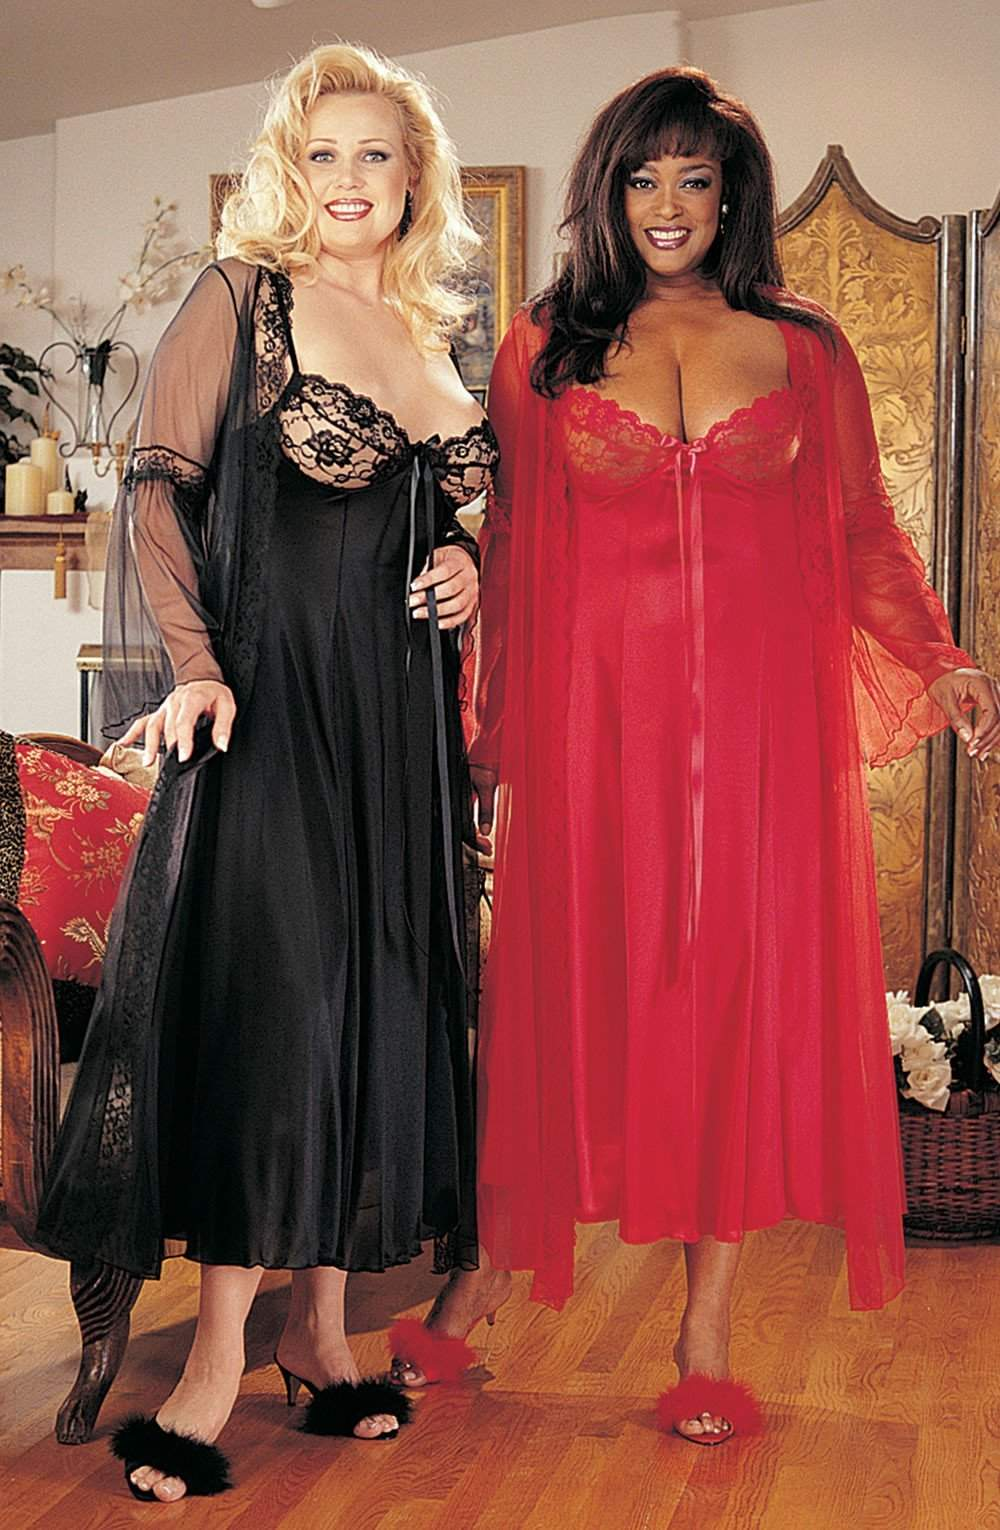 X3489 Gown in Red by Shirley of Hollywood - Shirley of Hollywood - Katys Boutique Lingerie USA